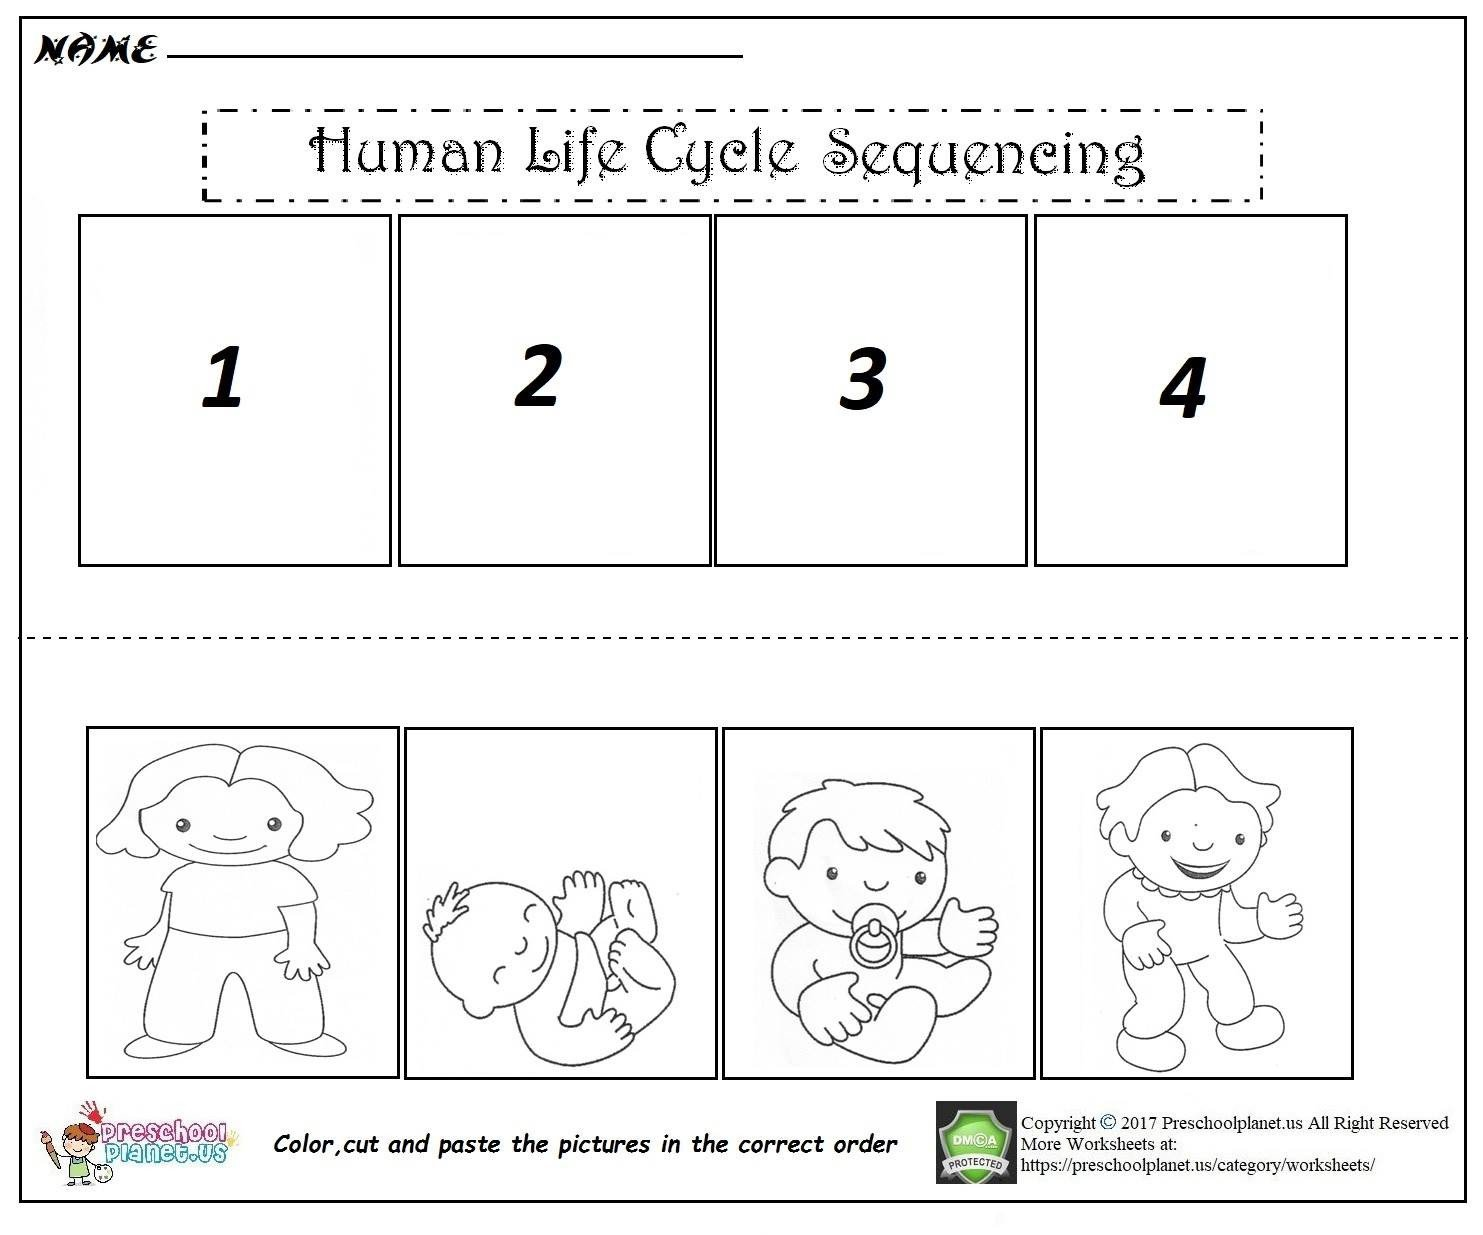 Sequencing Pictures Worksheet Human Life Cycle Sequencing Worksheet – Preschoolplanet